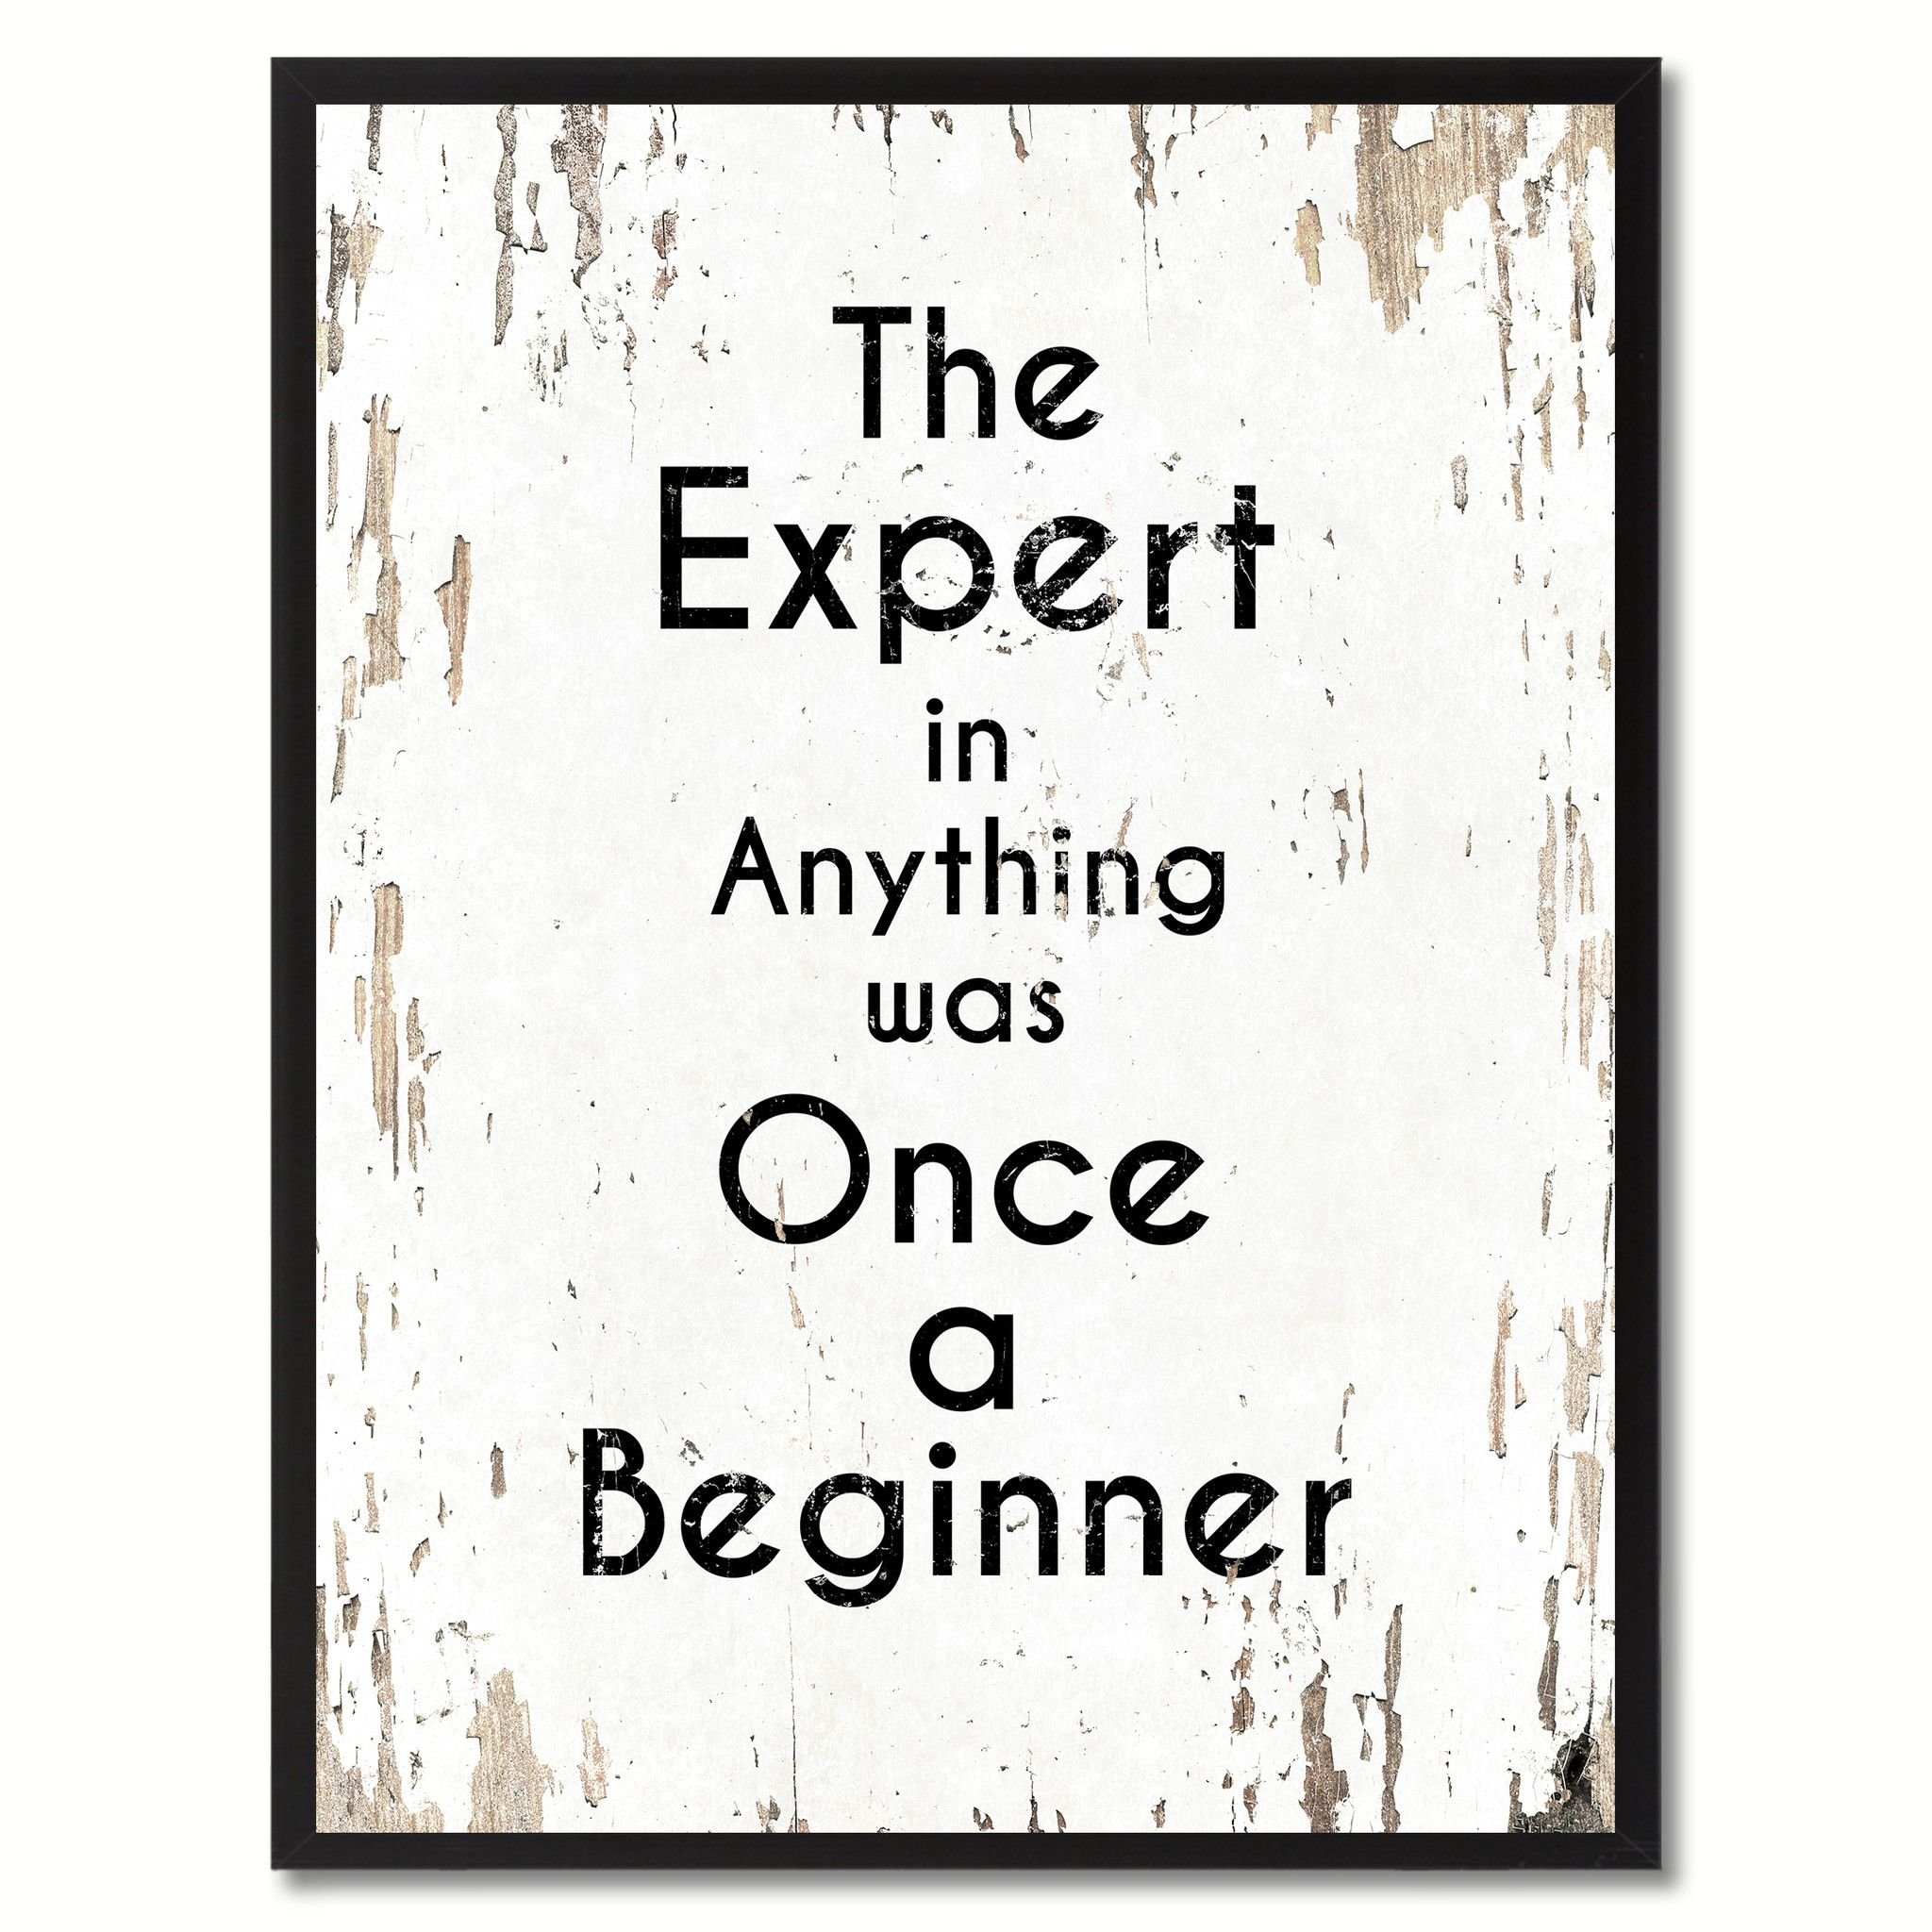 Beau The Expert In Anything Was Once A Beginner Inspirational Quote Saying Gift  Ideas Home Décor Wall Art